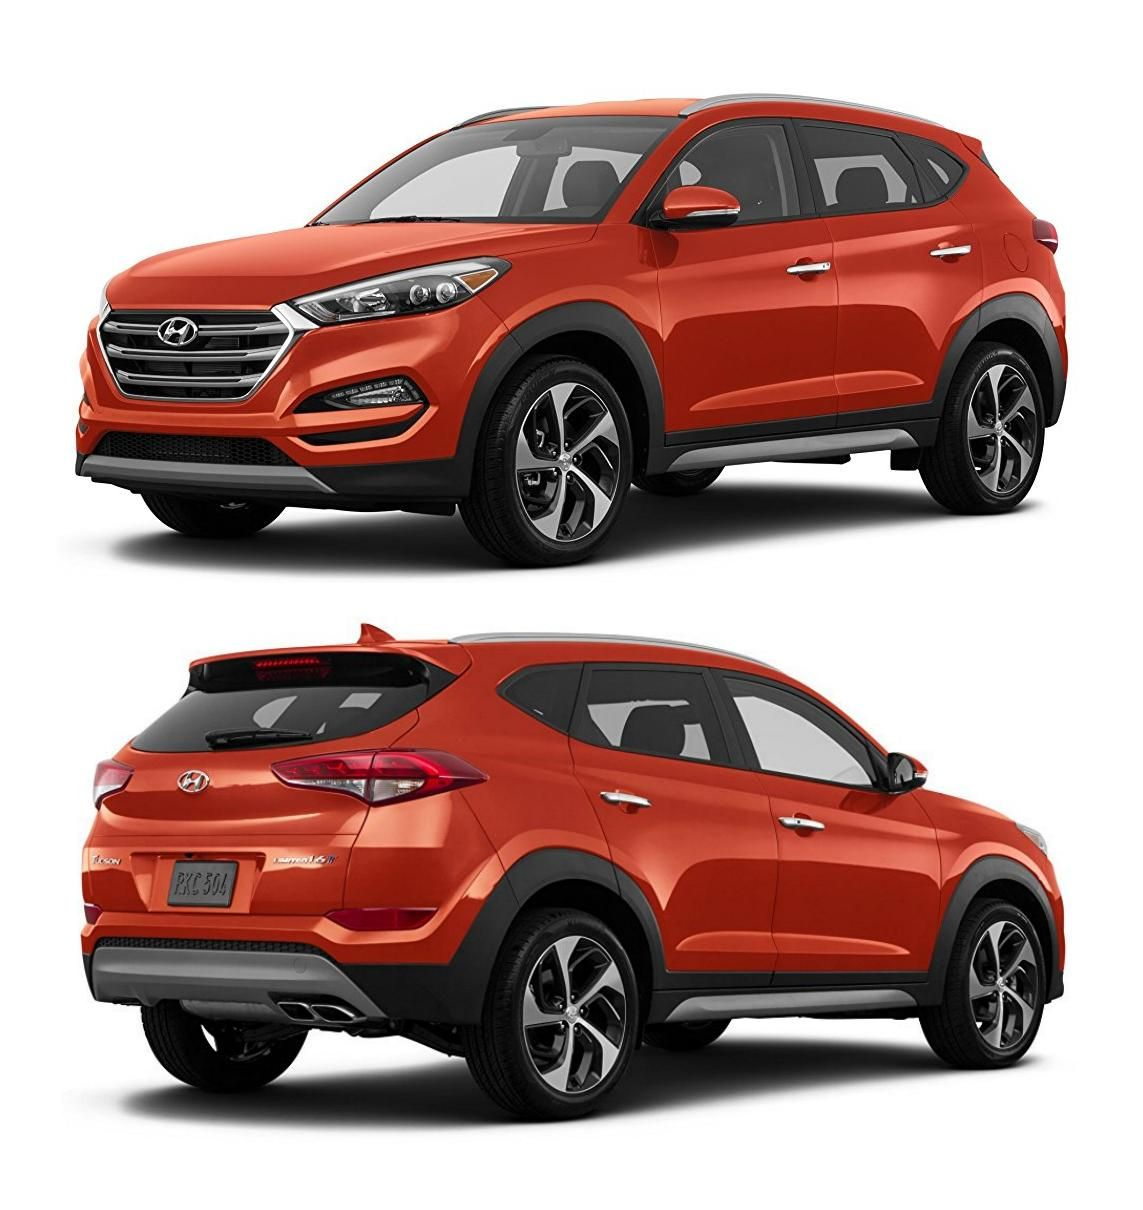 Hyundai Tucson, 2017 US model in Sedona Sunset paint